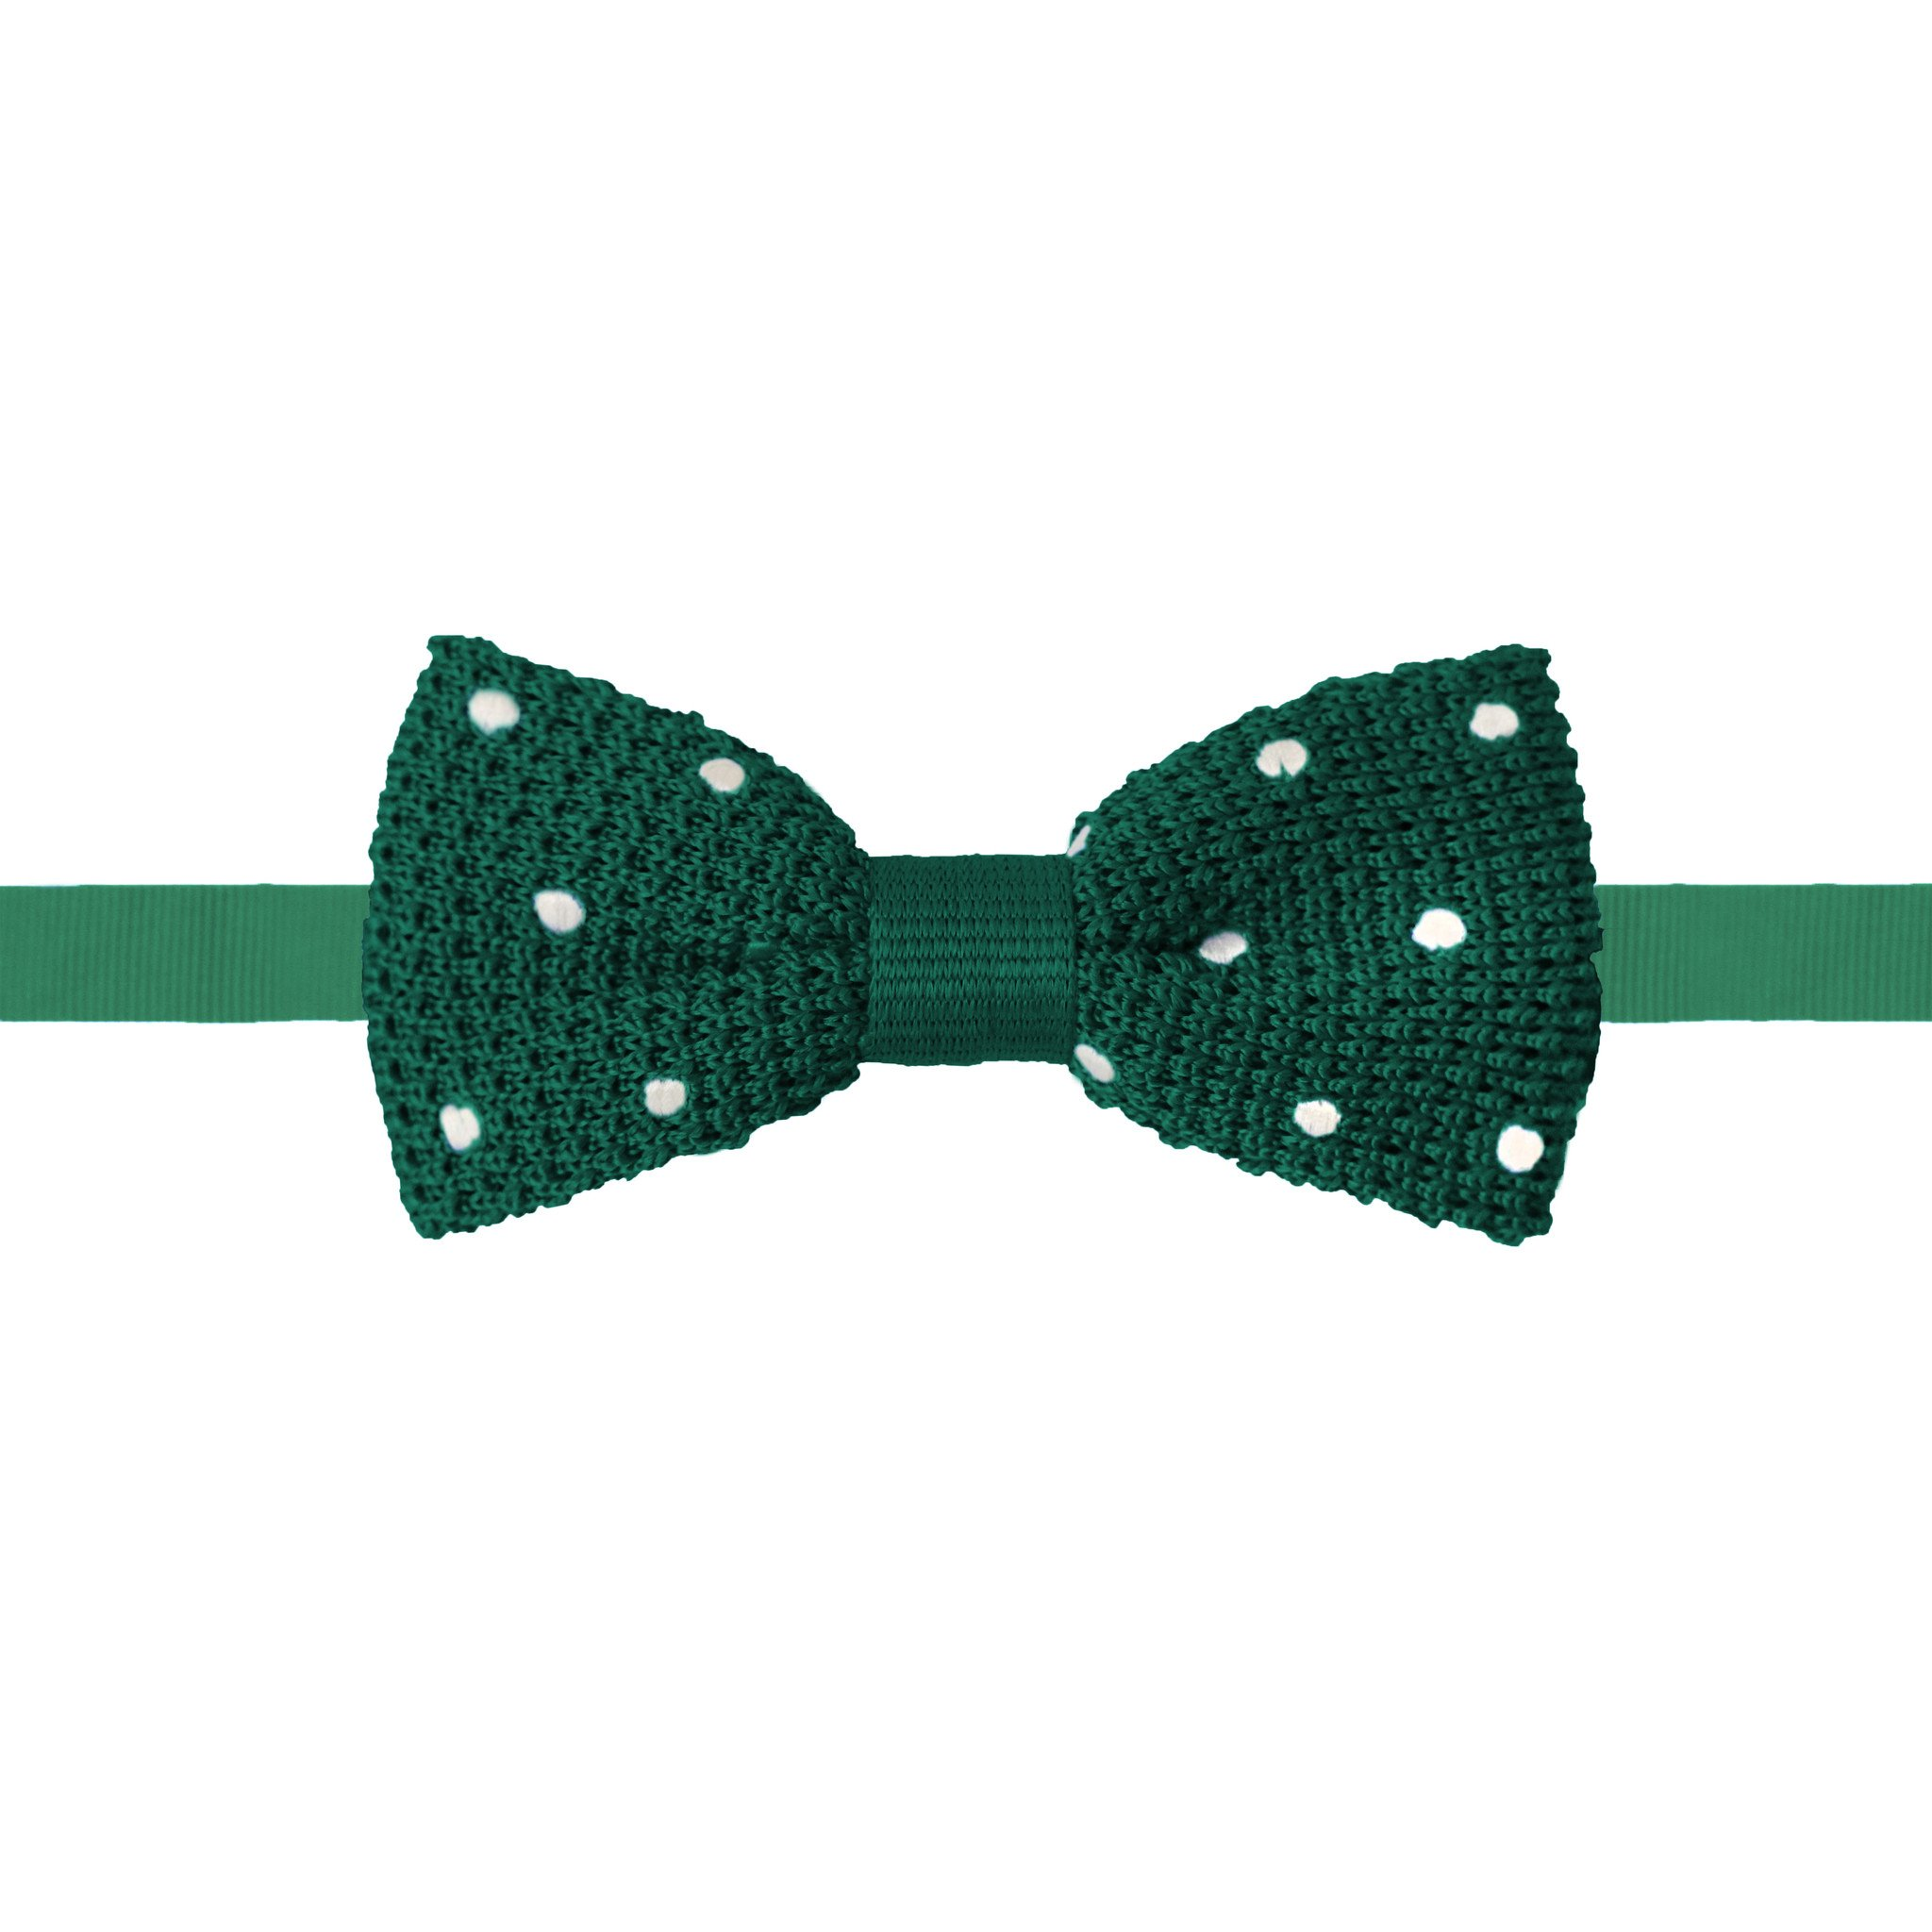 Knit Polka Dot Bow Tie Green